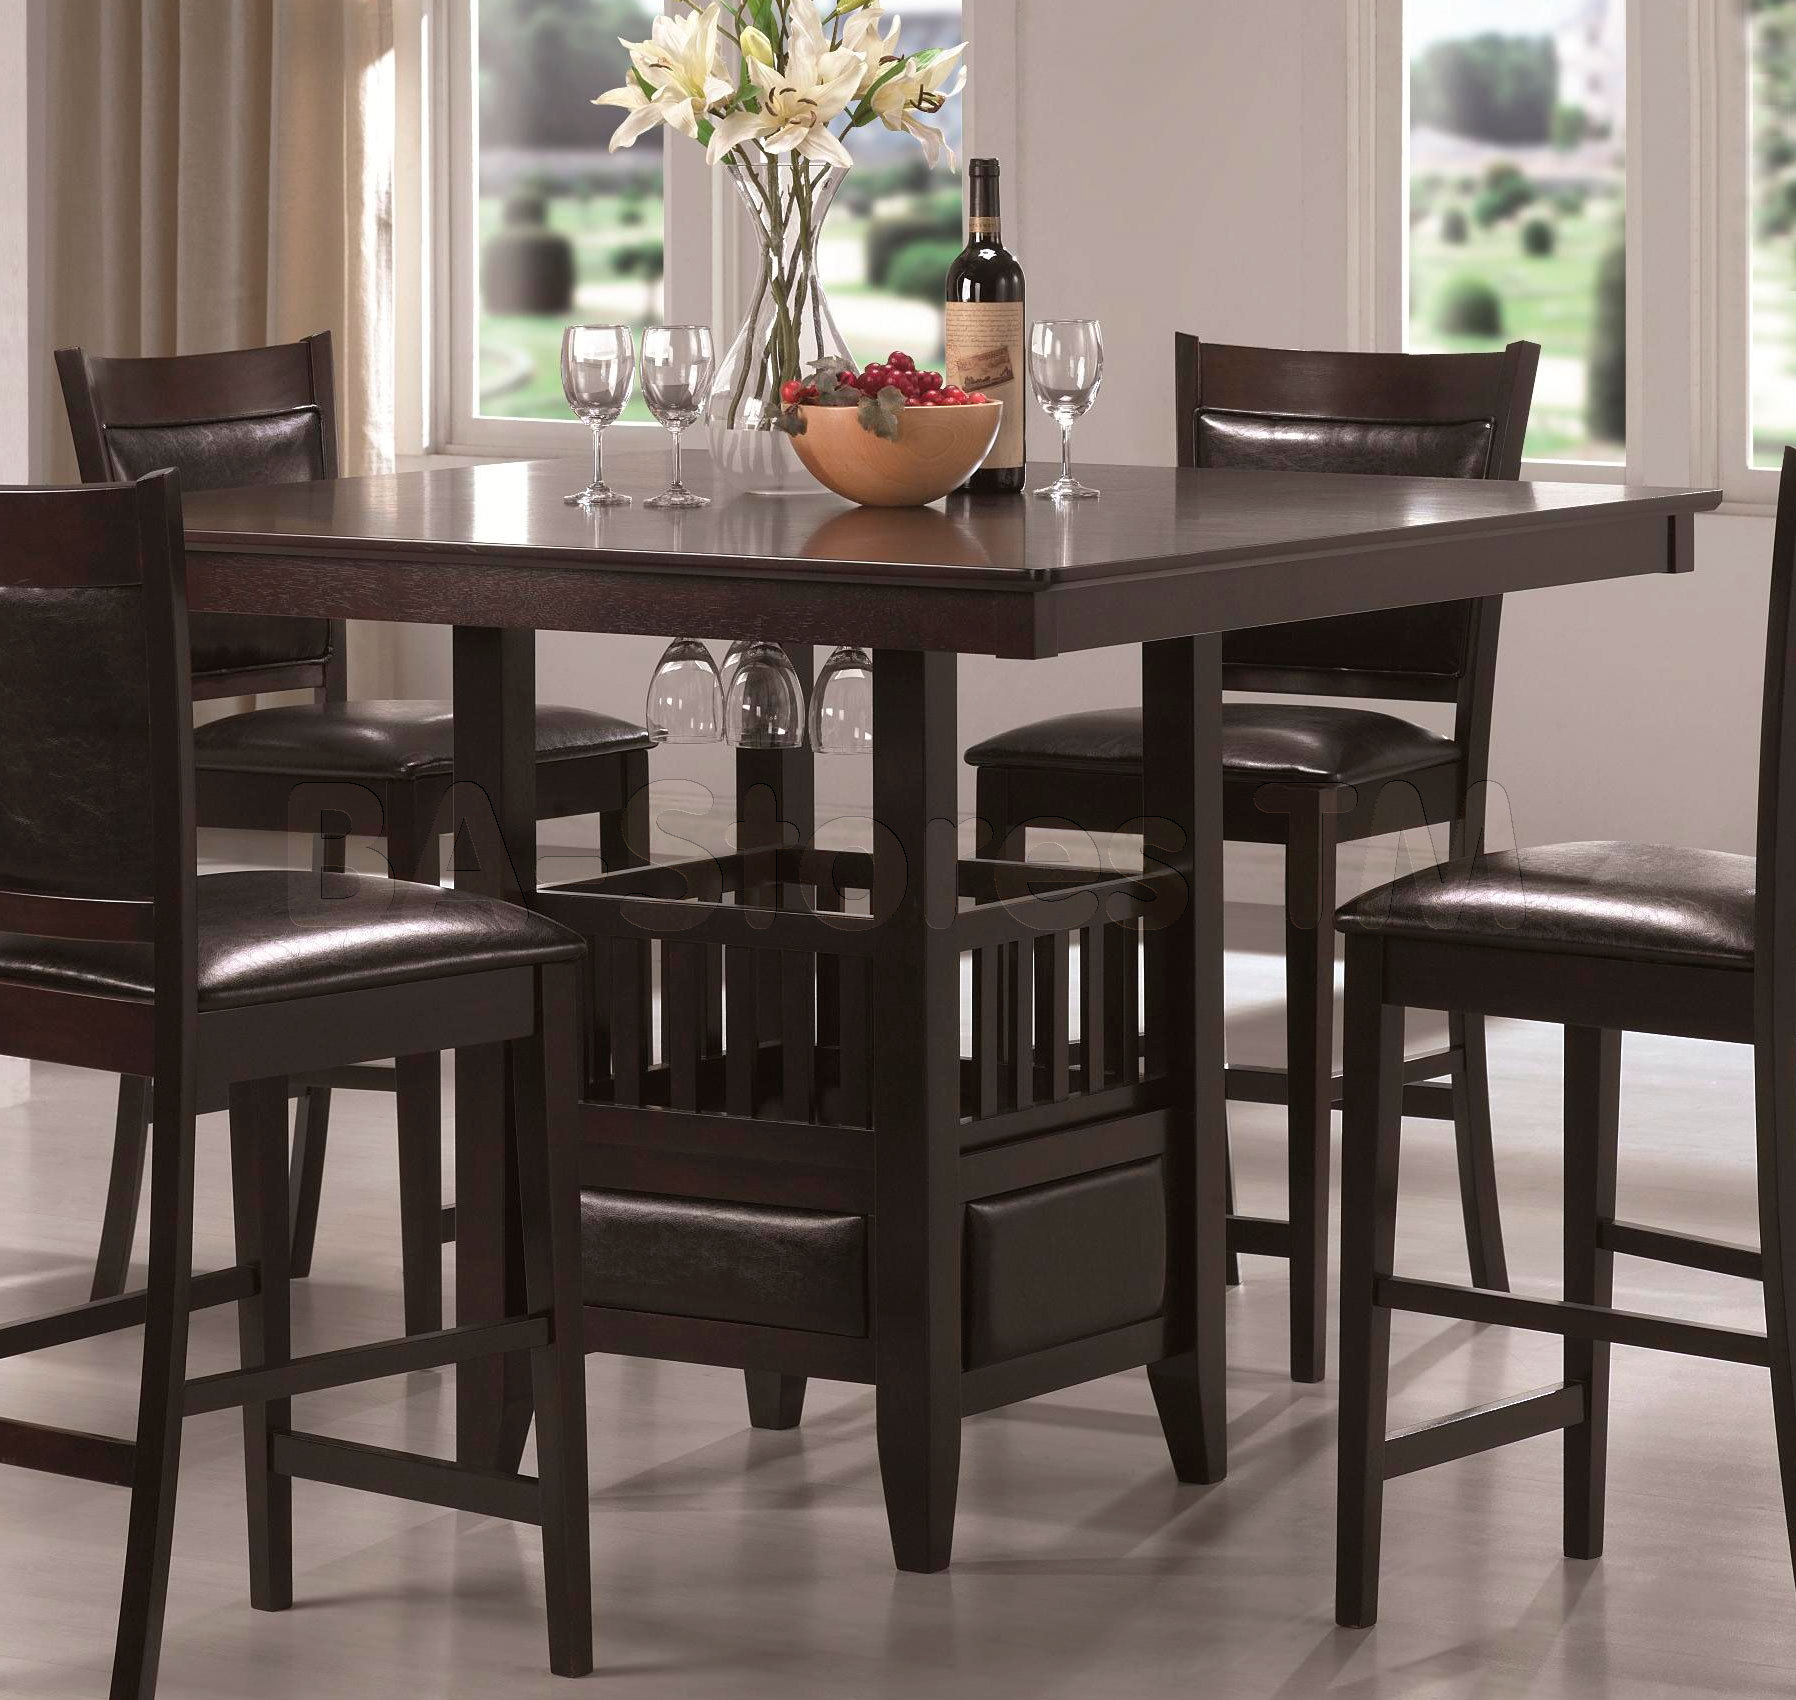 Bar Height Table And Chairs Furniture Idea